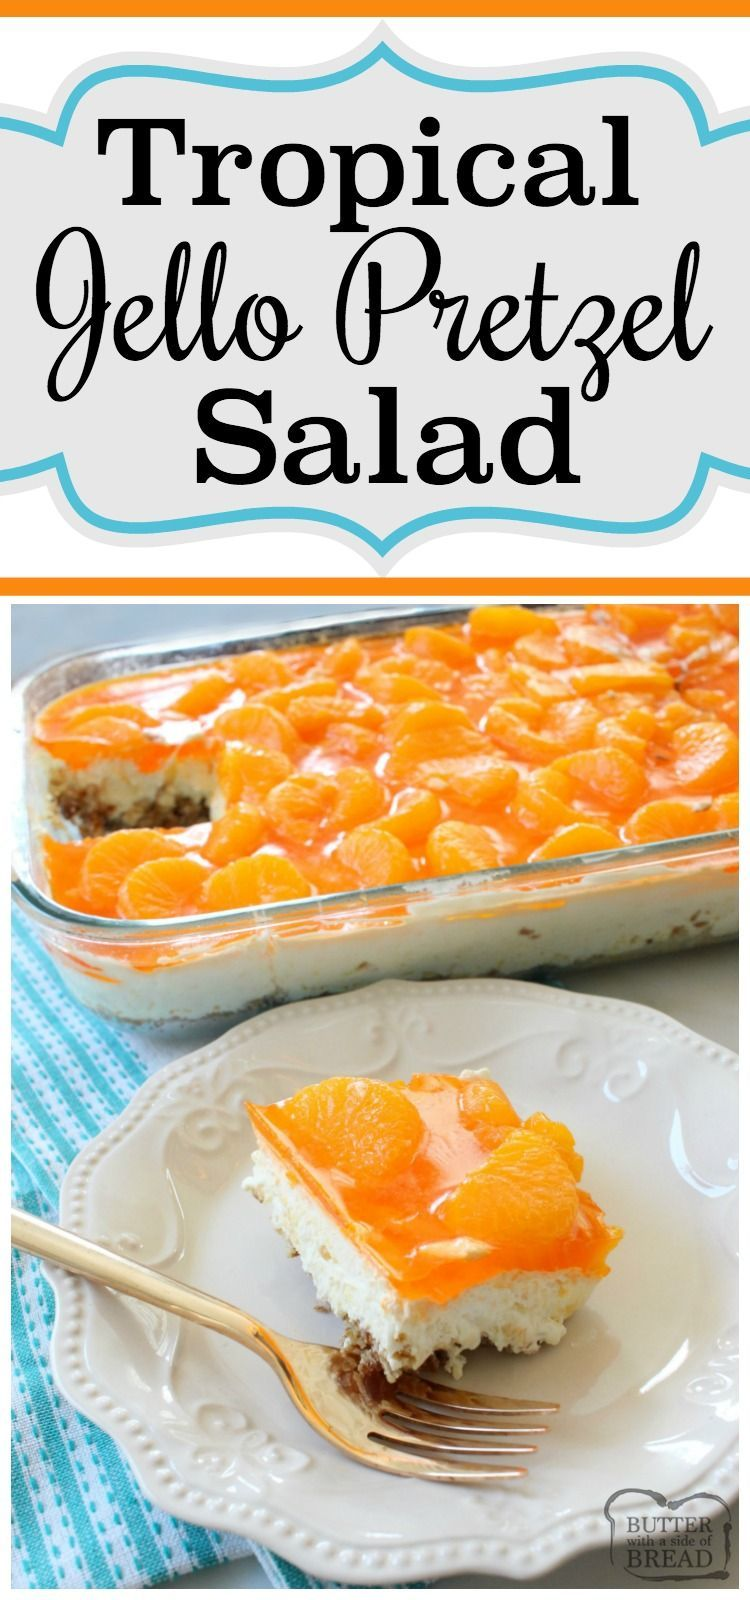 traditional Jello Pretzel Salad with a fun twist- tropical flavors! The orange, pineapple and coconut combine to make this an insanely delicious salad. Easy to make sweet salad recipe from Butter With A Side of Bread via @ButterGirls